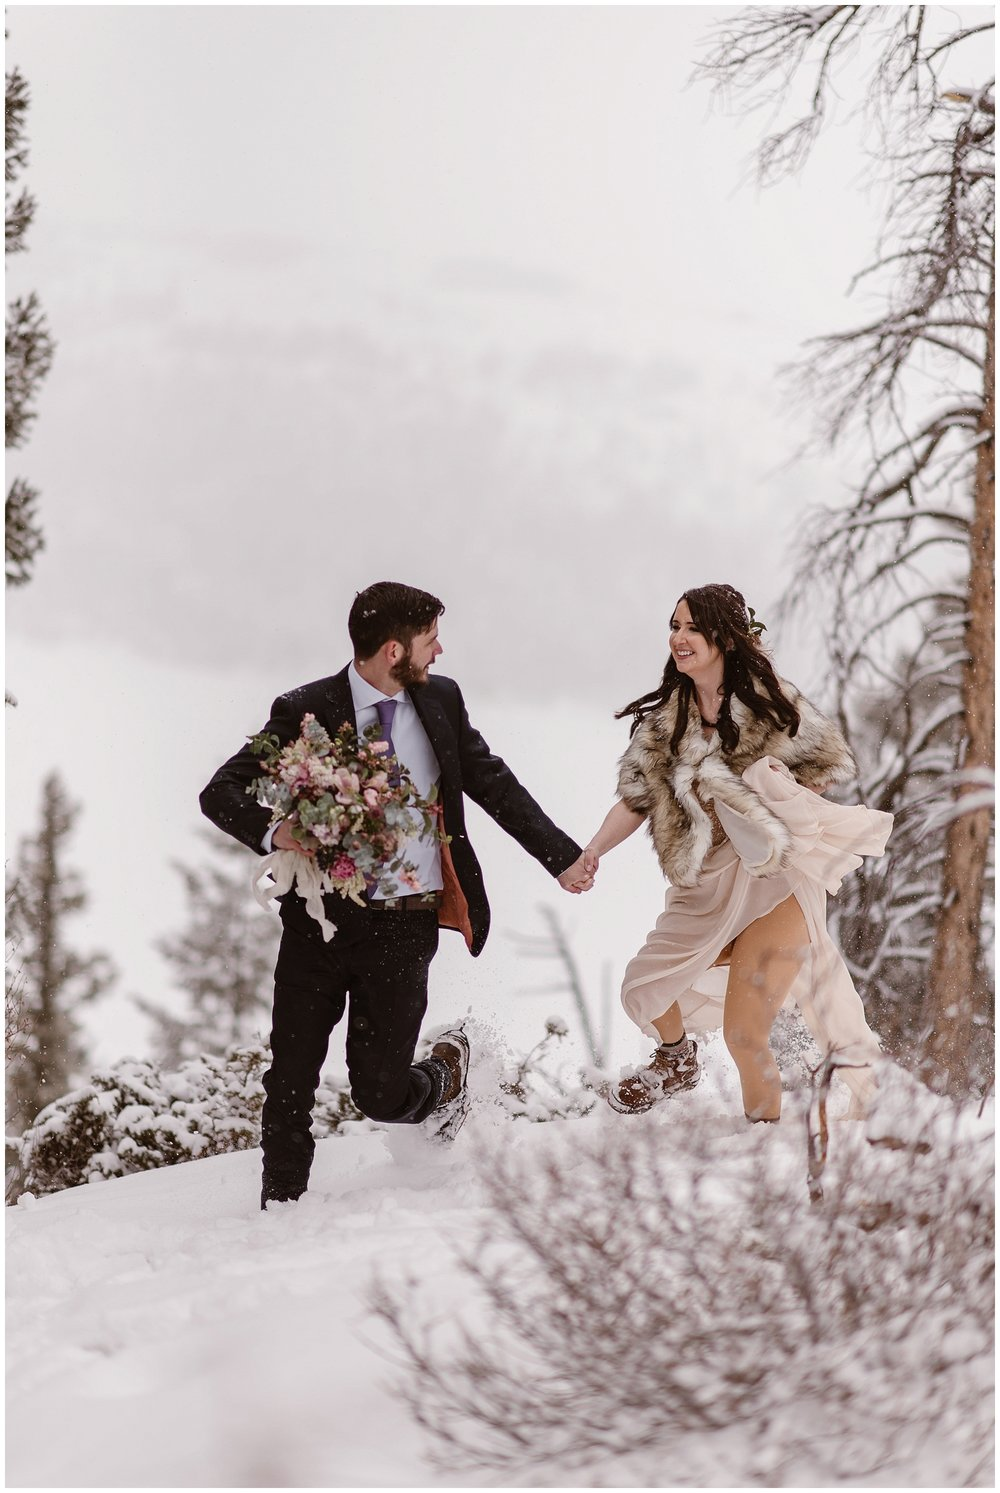 Marlayna and Austin brave the snow for couple's portraits before their snowy winter elopement ceremony at Sapphire Point. Photo by Adventure Instead, Maddie Mae Elopement Photographers.